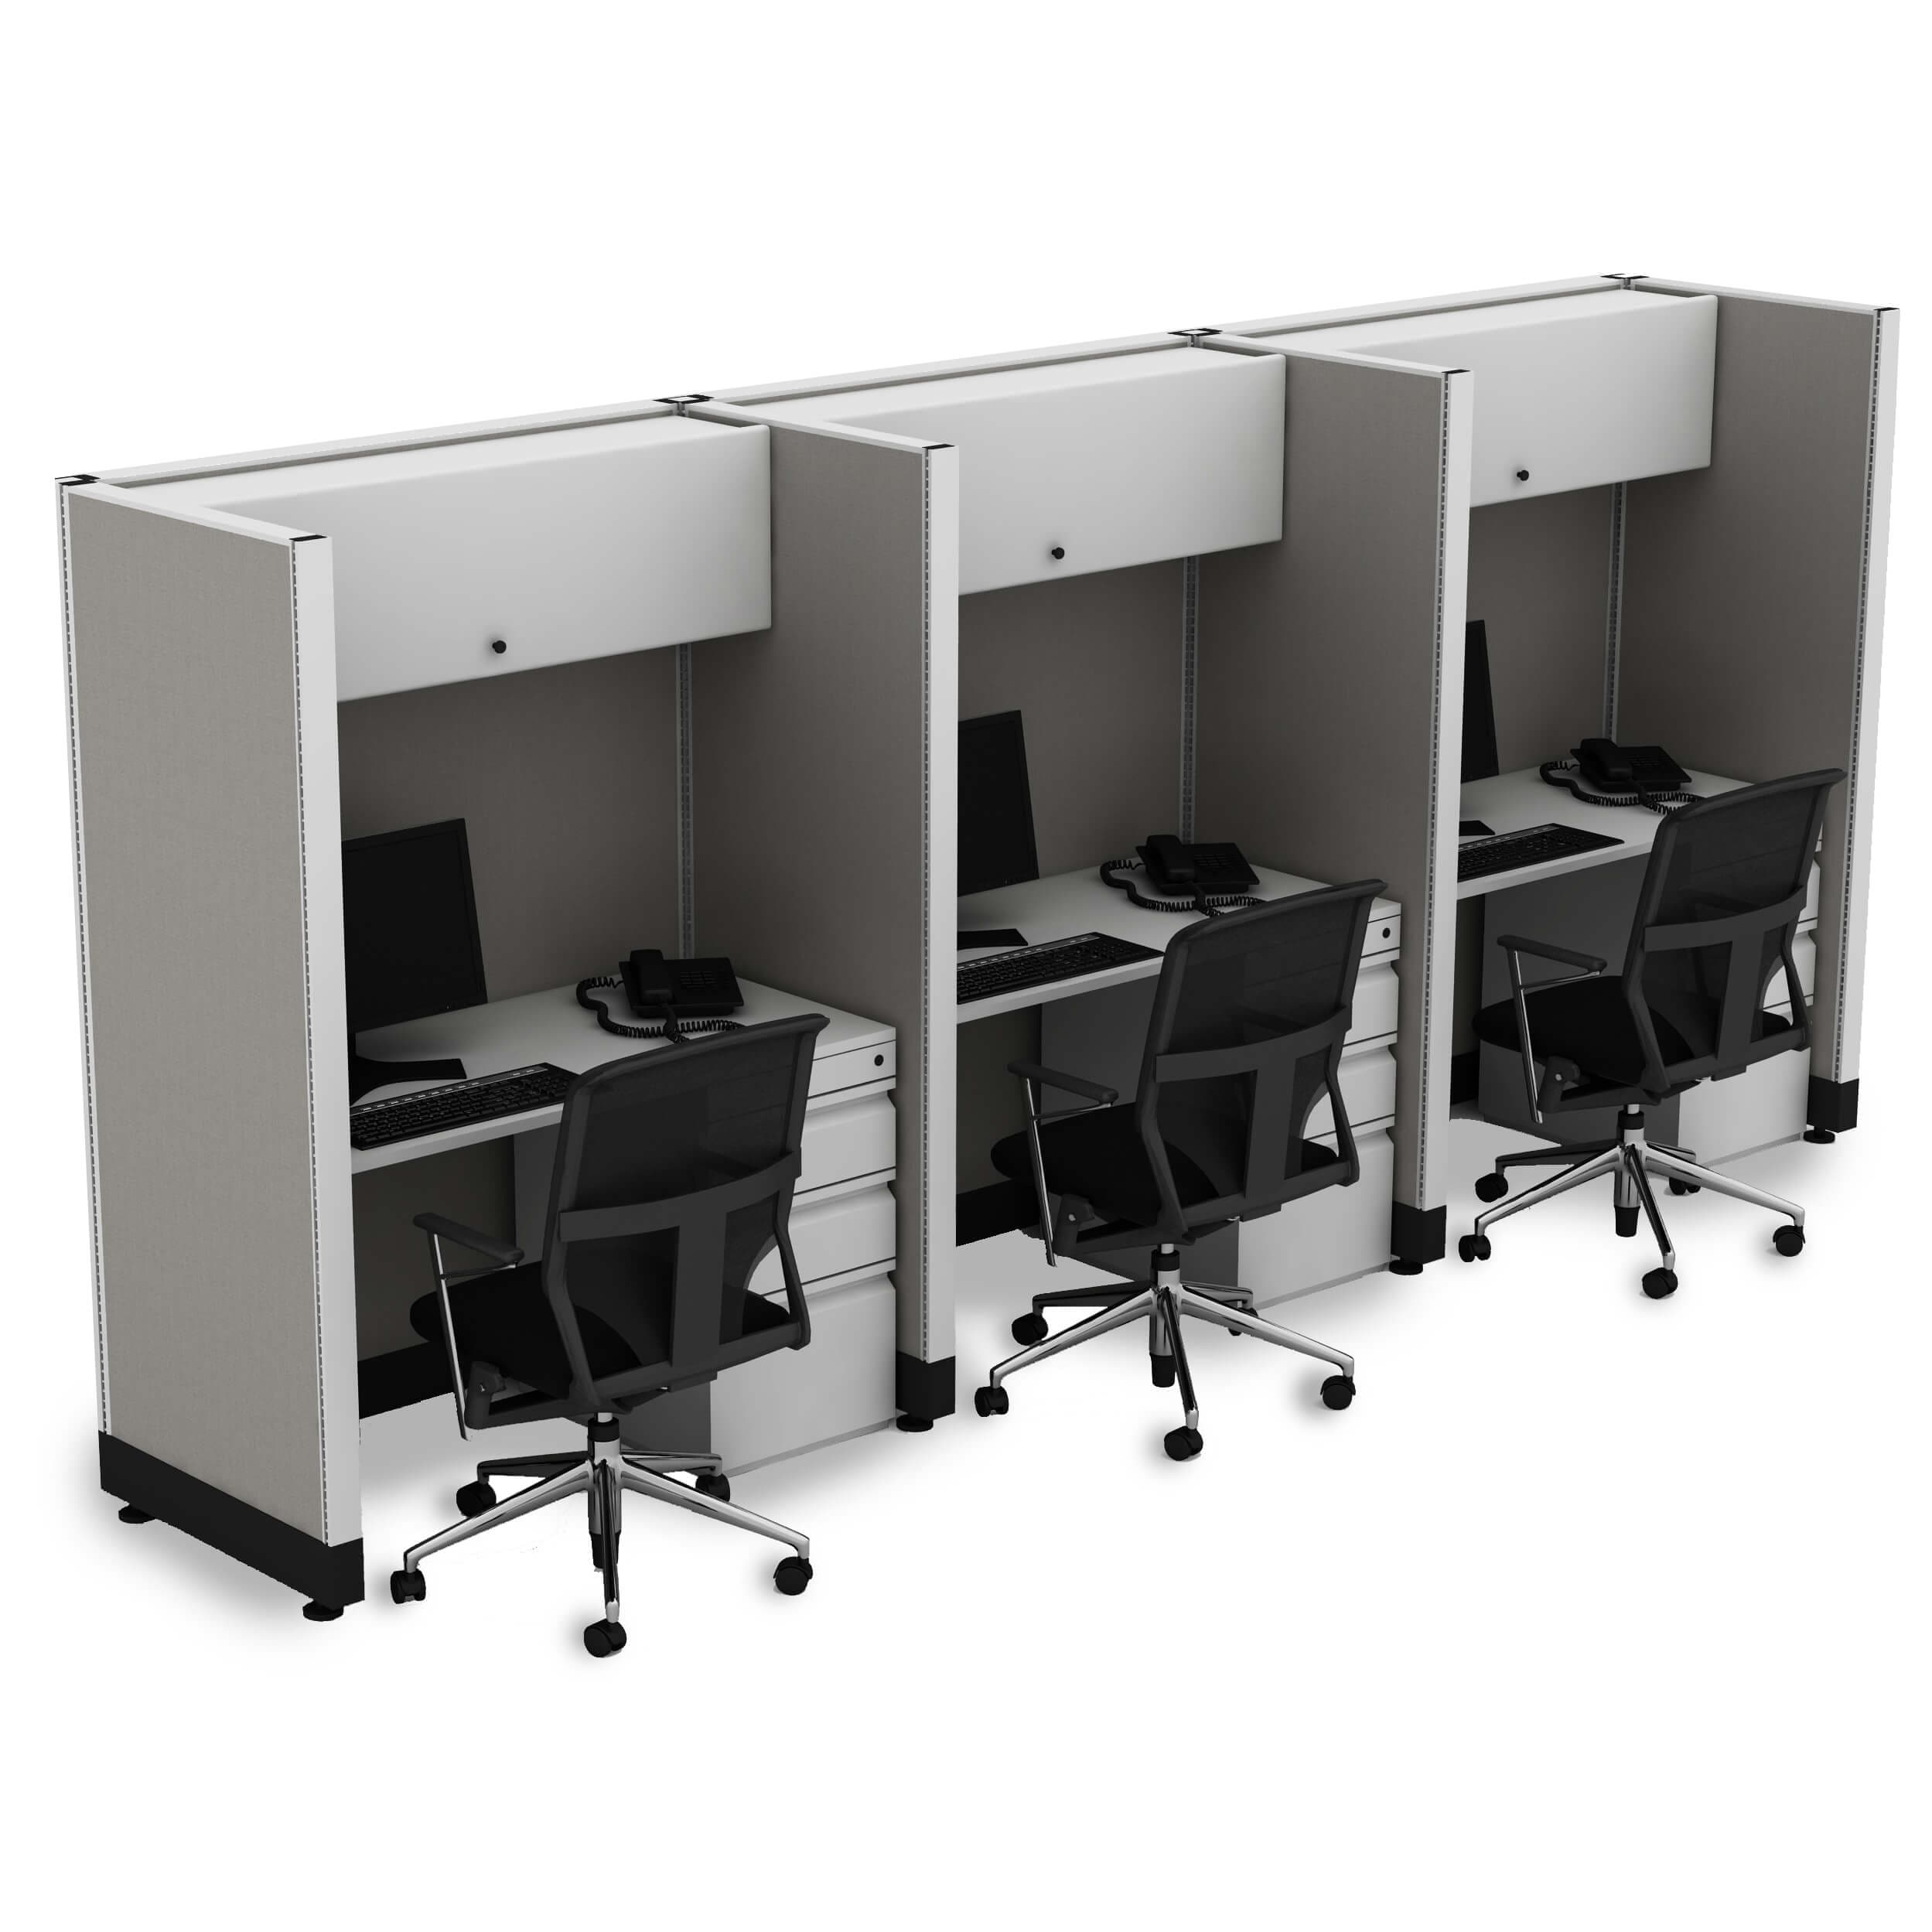 Hoteling Stations 67H 3pack Inline Powered (2x3 - Espresso Desk White Paint - Assembled)